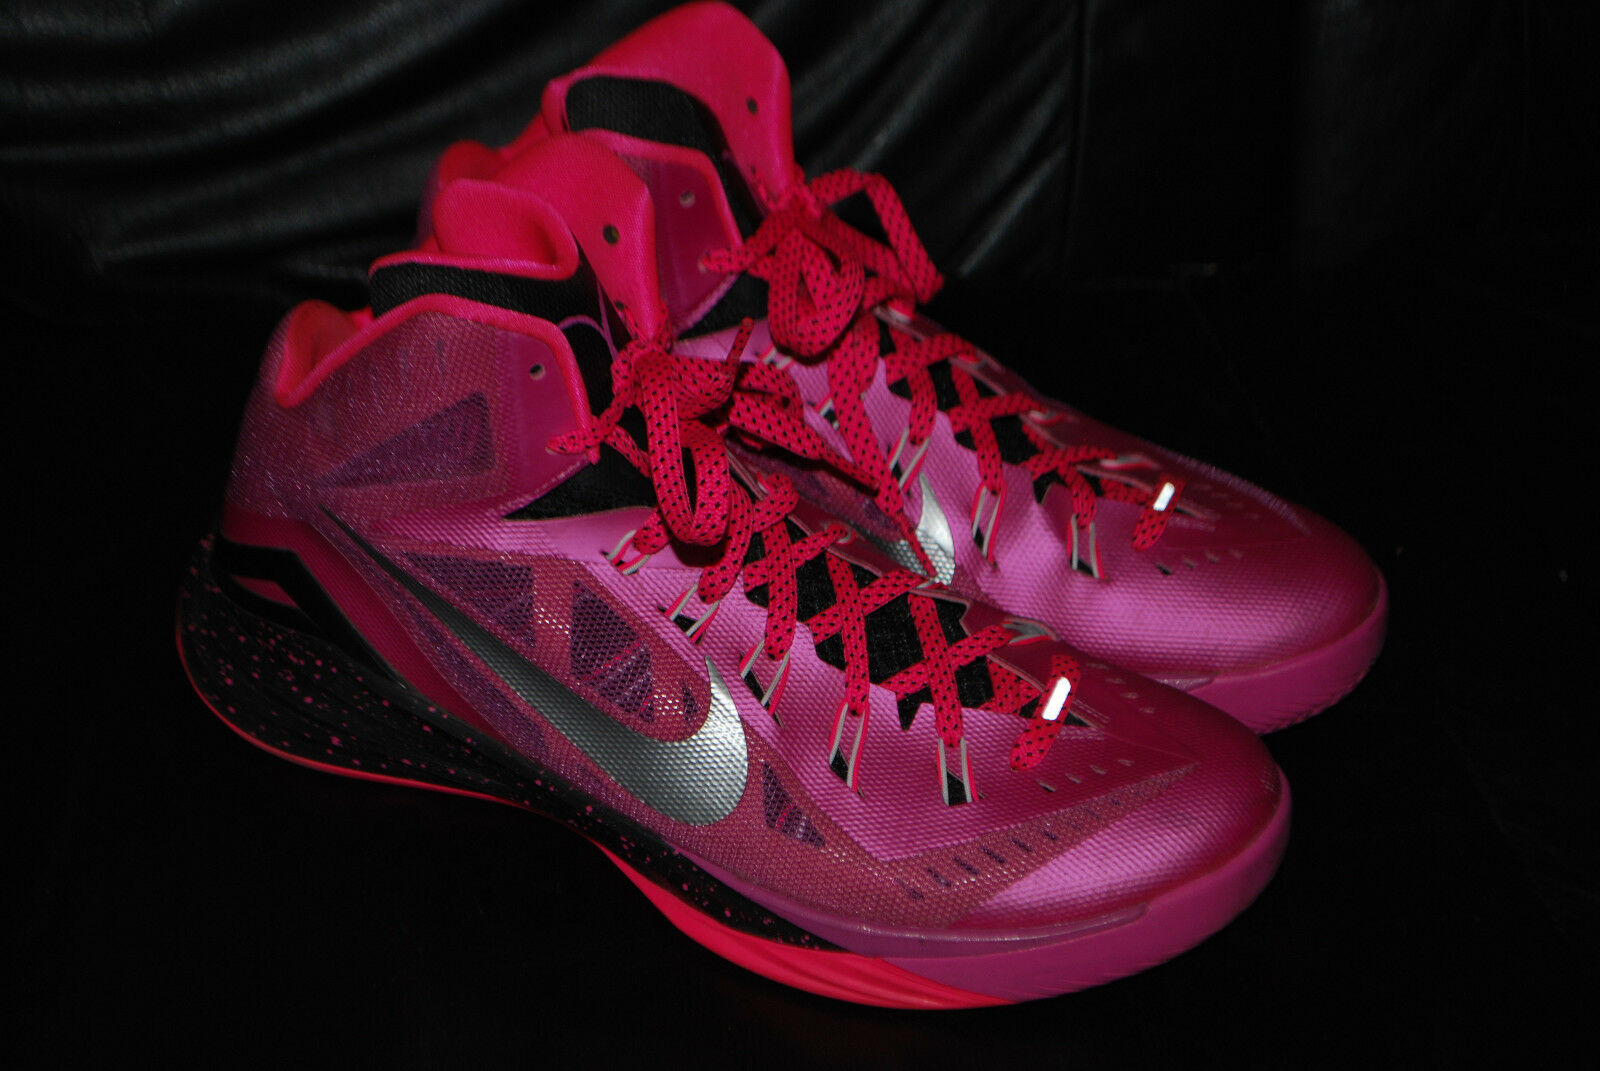 promo code 05a70 4f664 Men s Nike Hyperdunk 2014 Think Think Think Pink Breast Cancer Sneakers  (11) 653640-